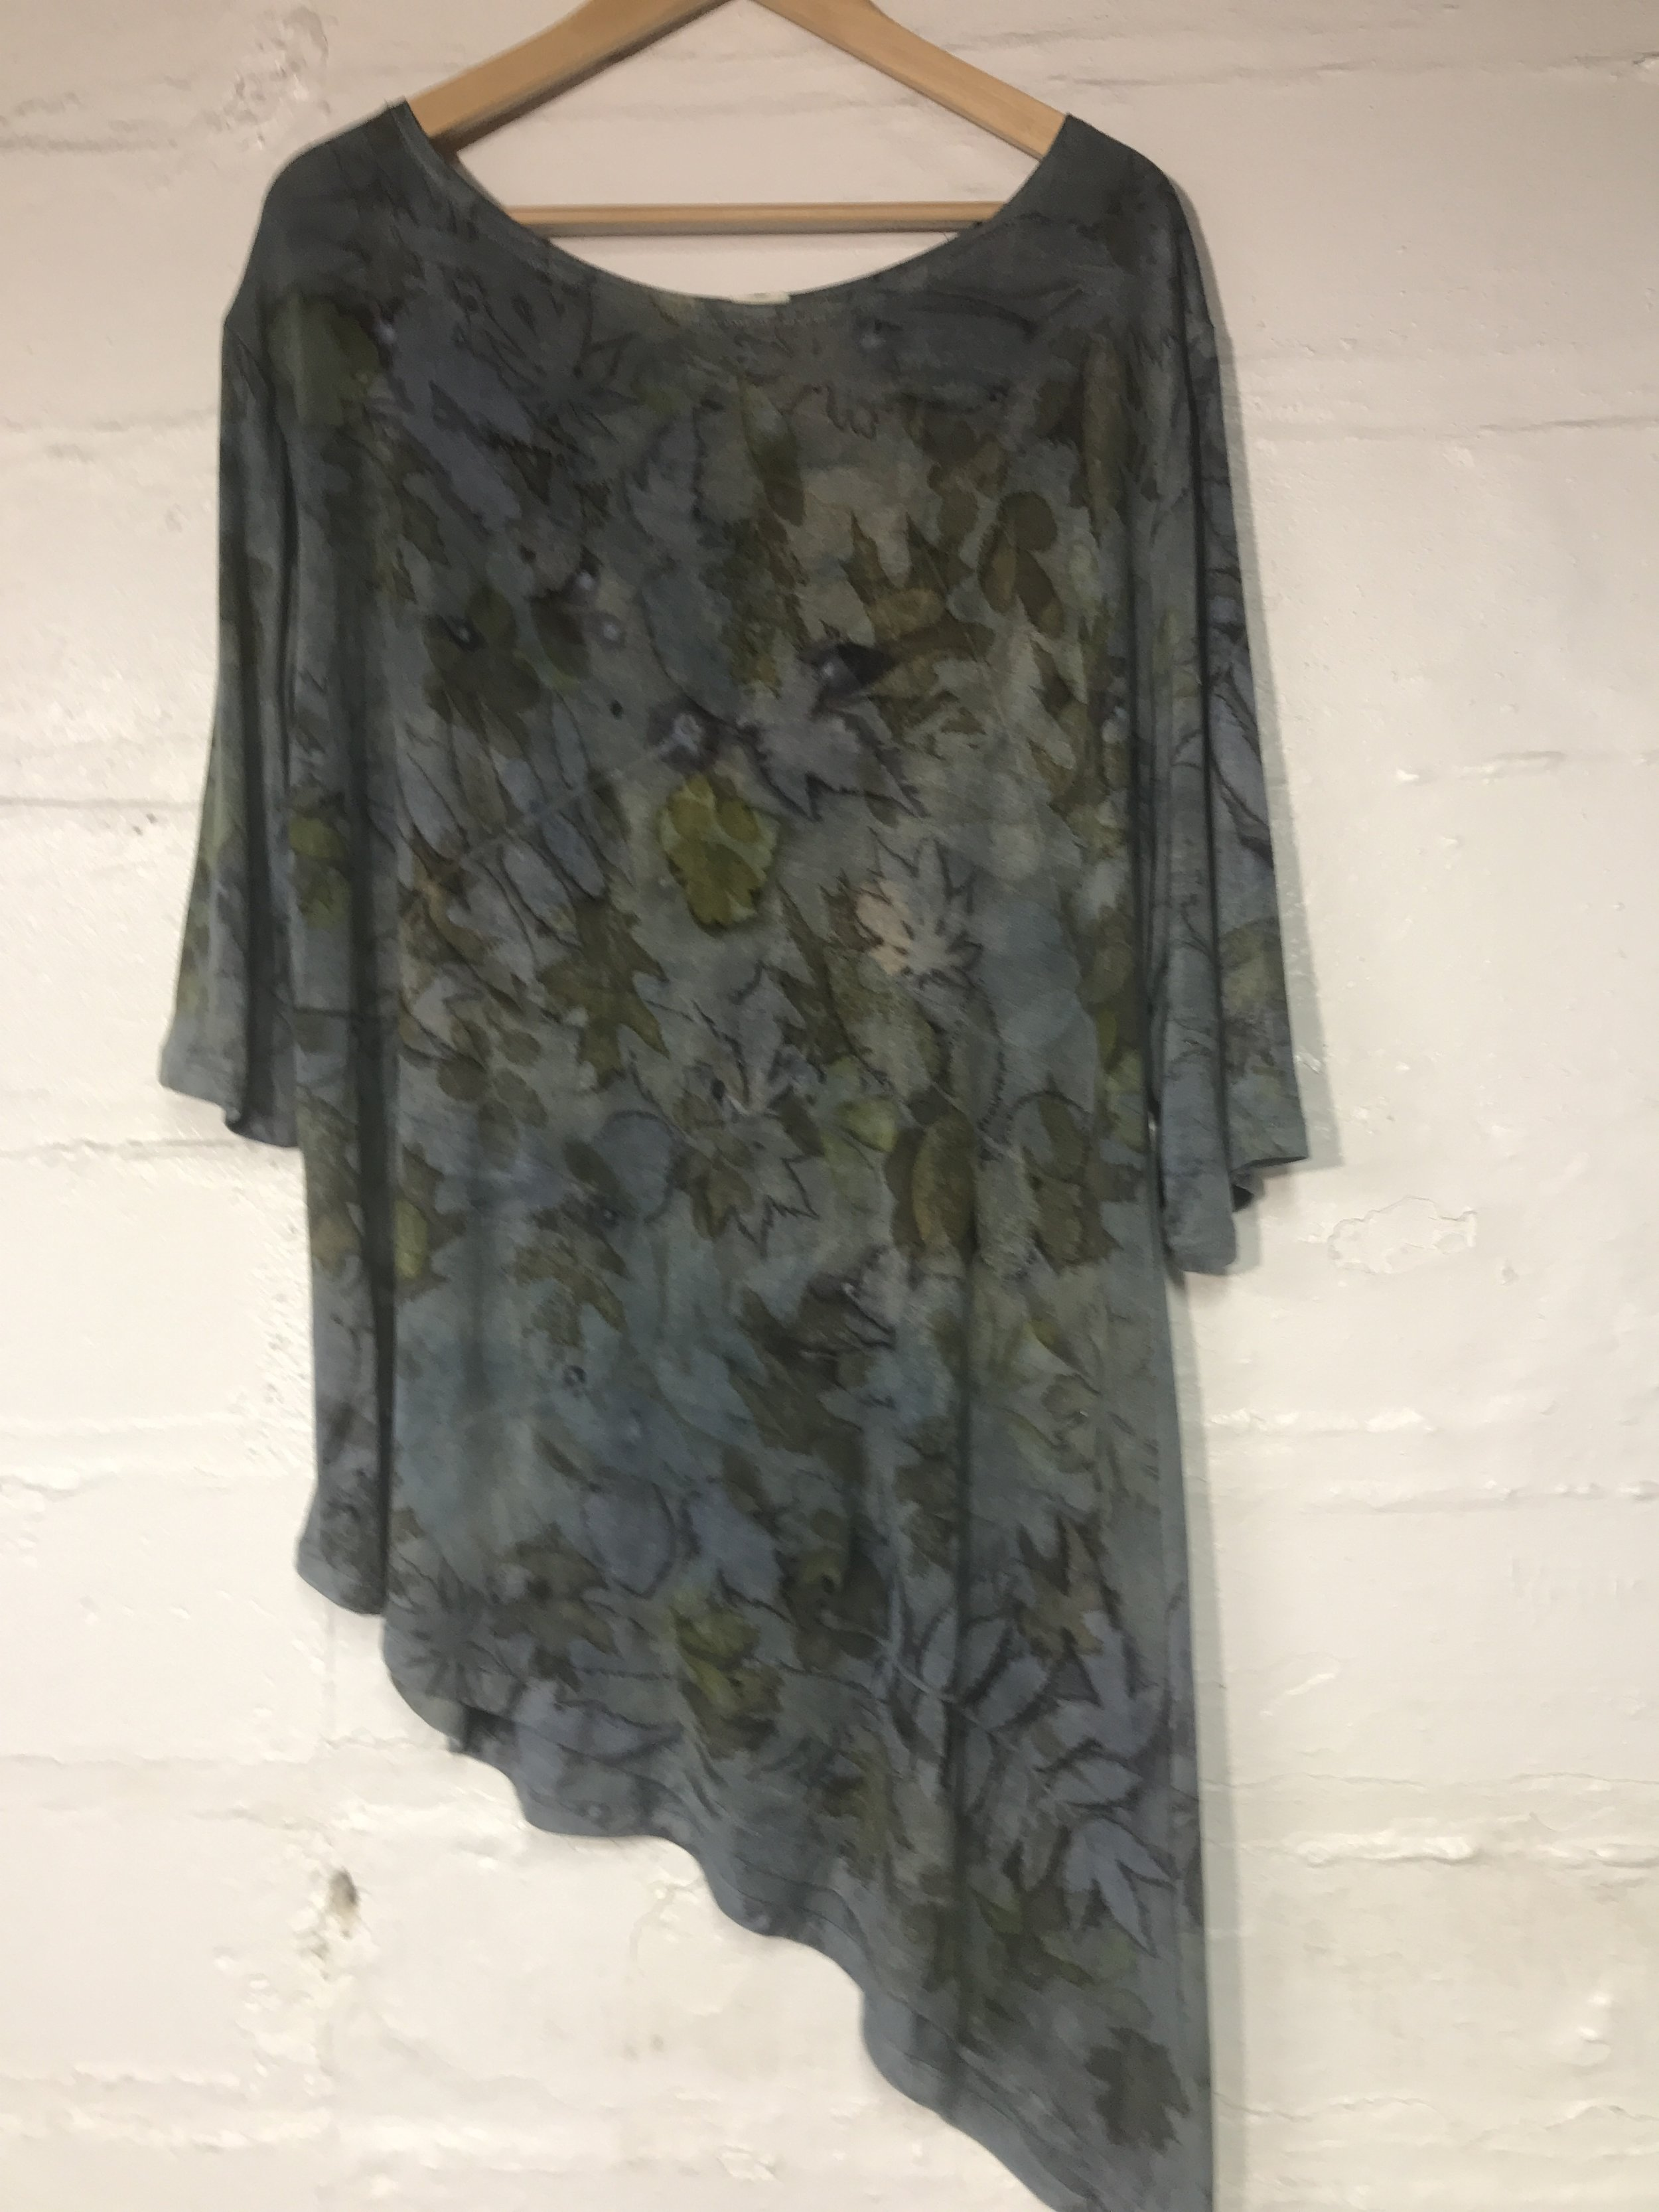 Bamboo jersey died in indigo and printed with various local leaves.